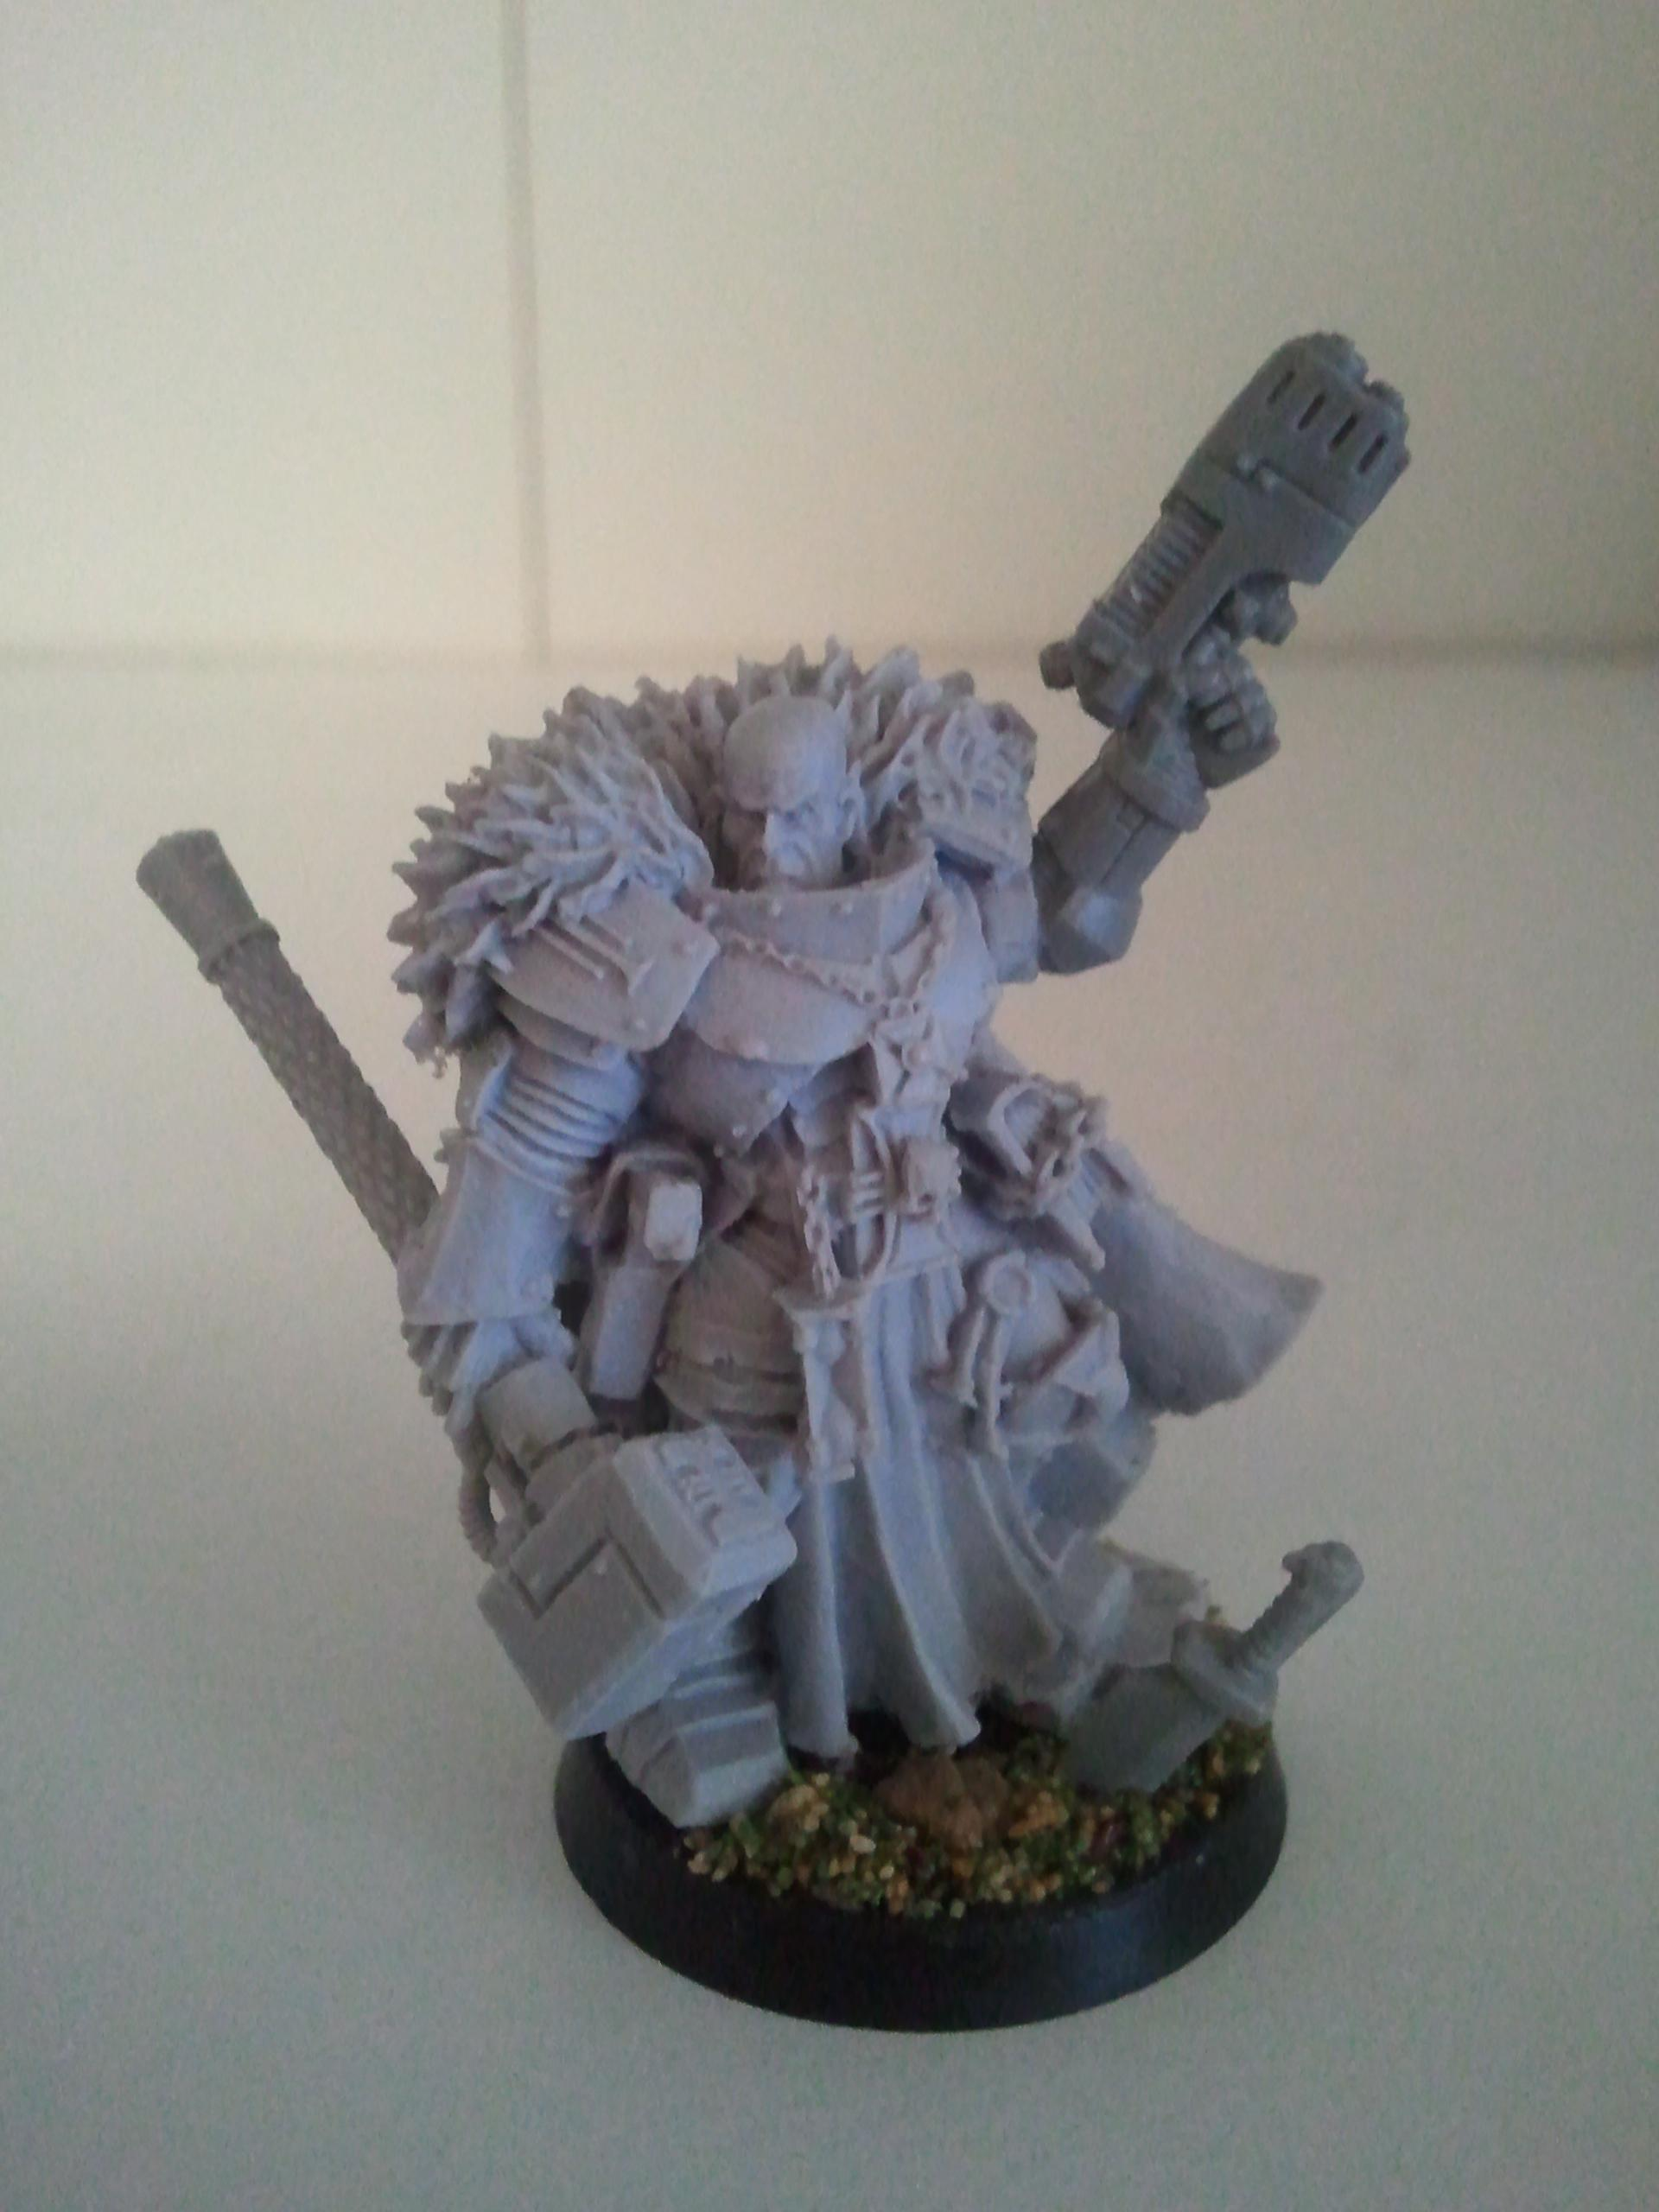 Dark Apostle! or as in my army! Radicle inquisitor!